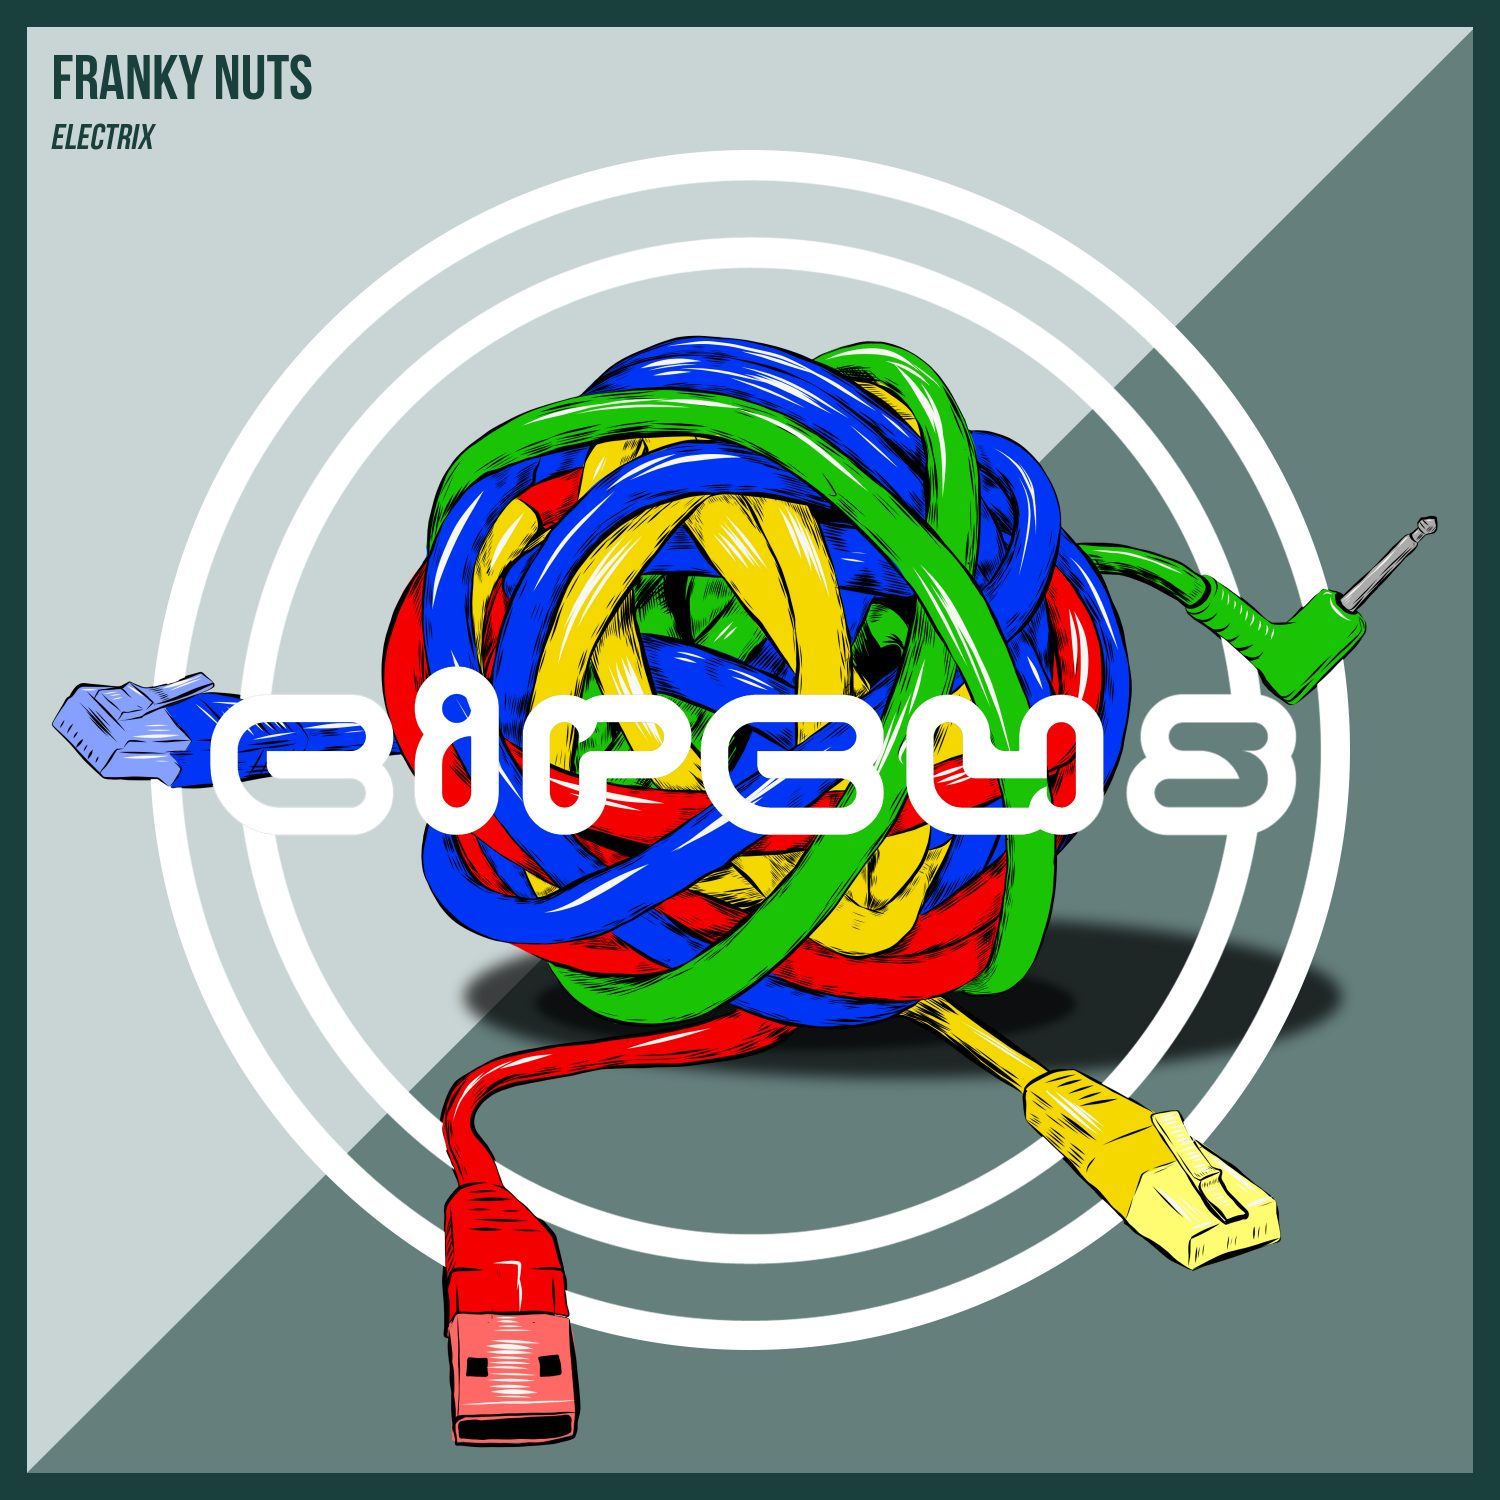 Franky Nuts Electrix EP Circus Records